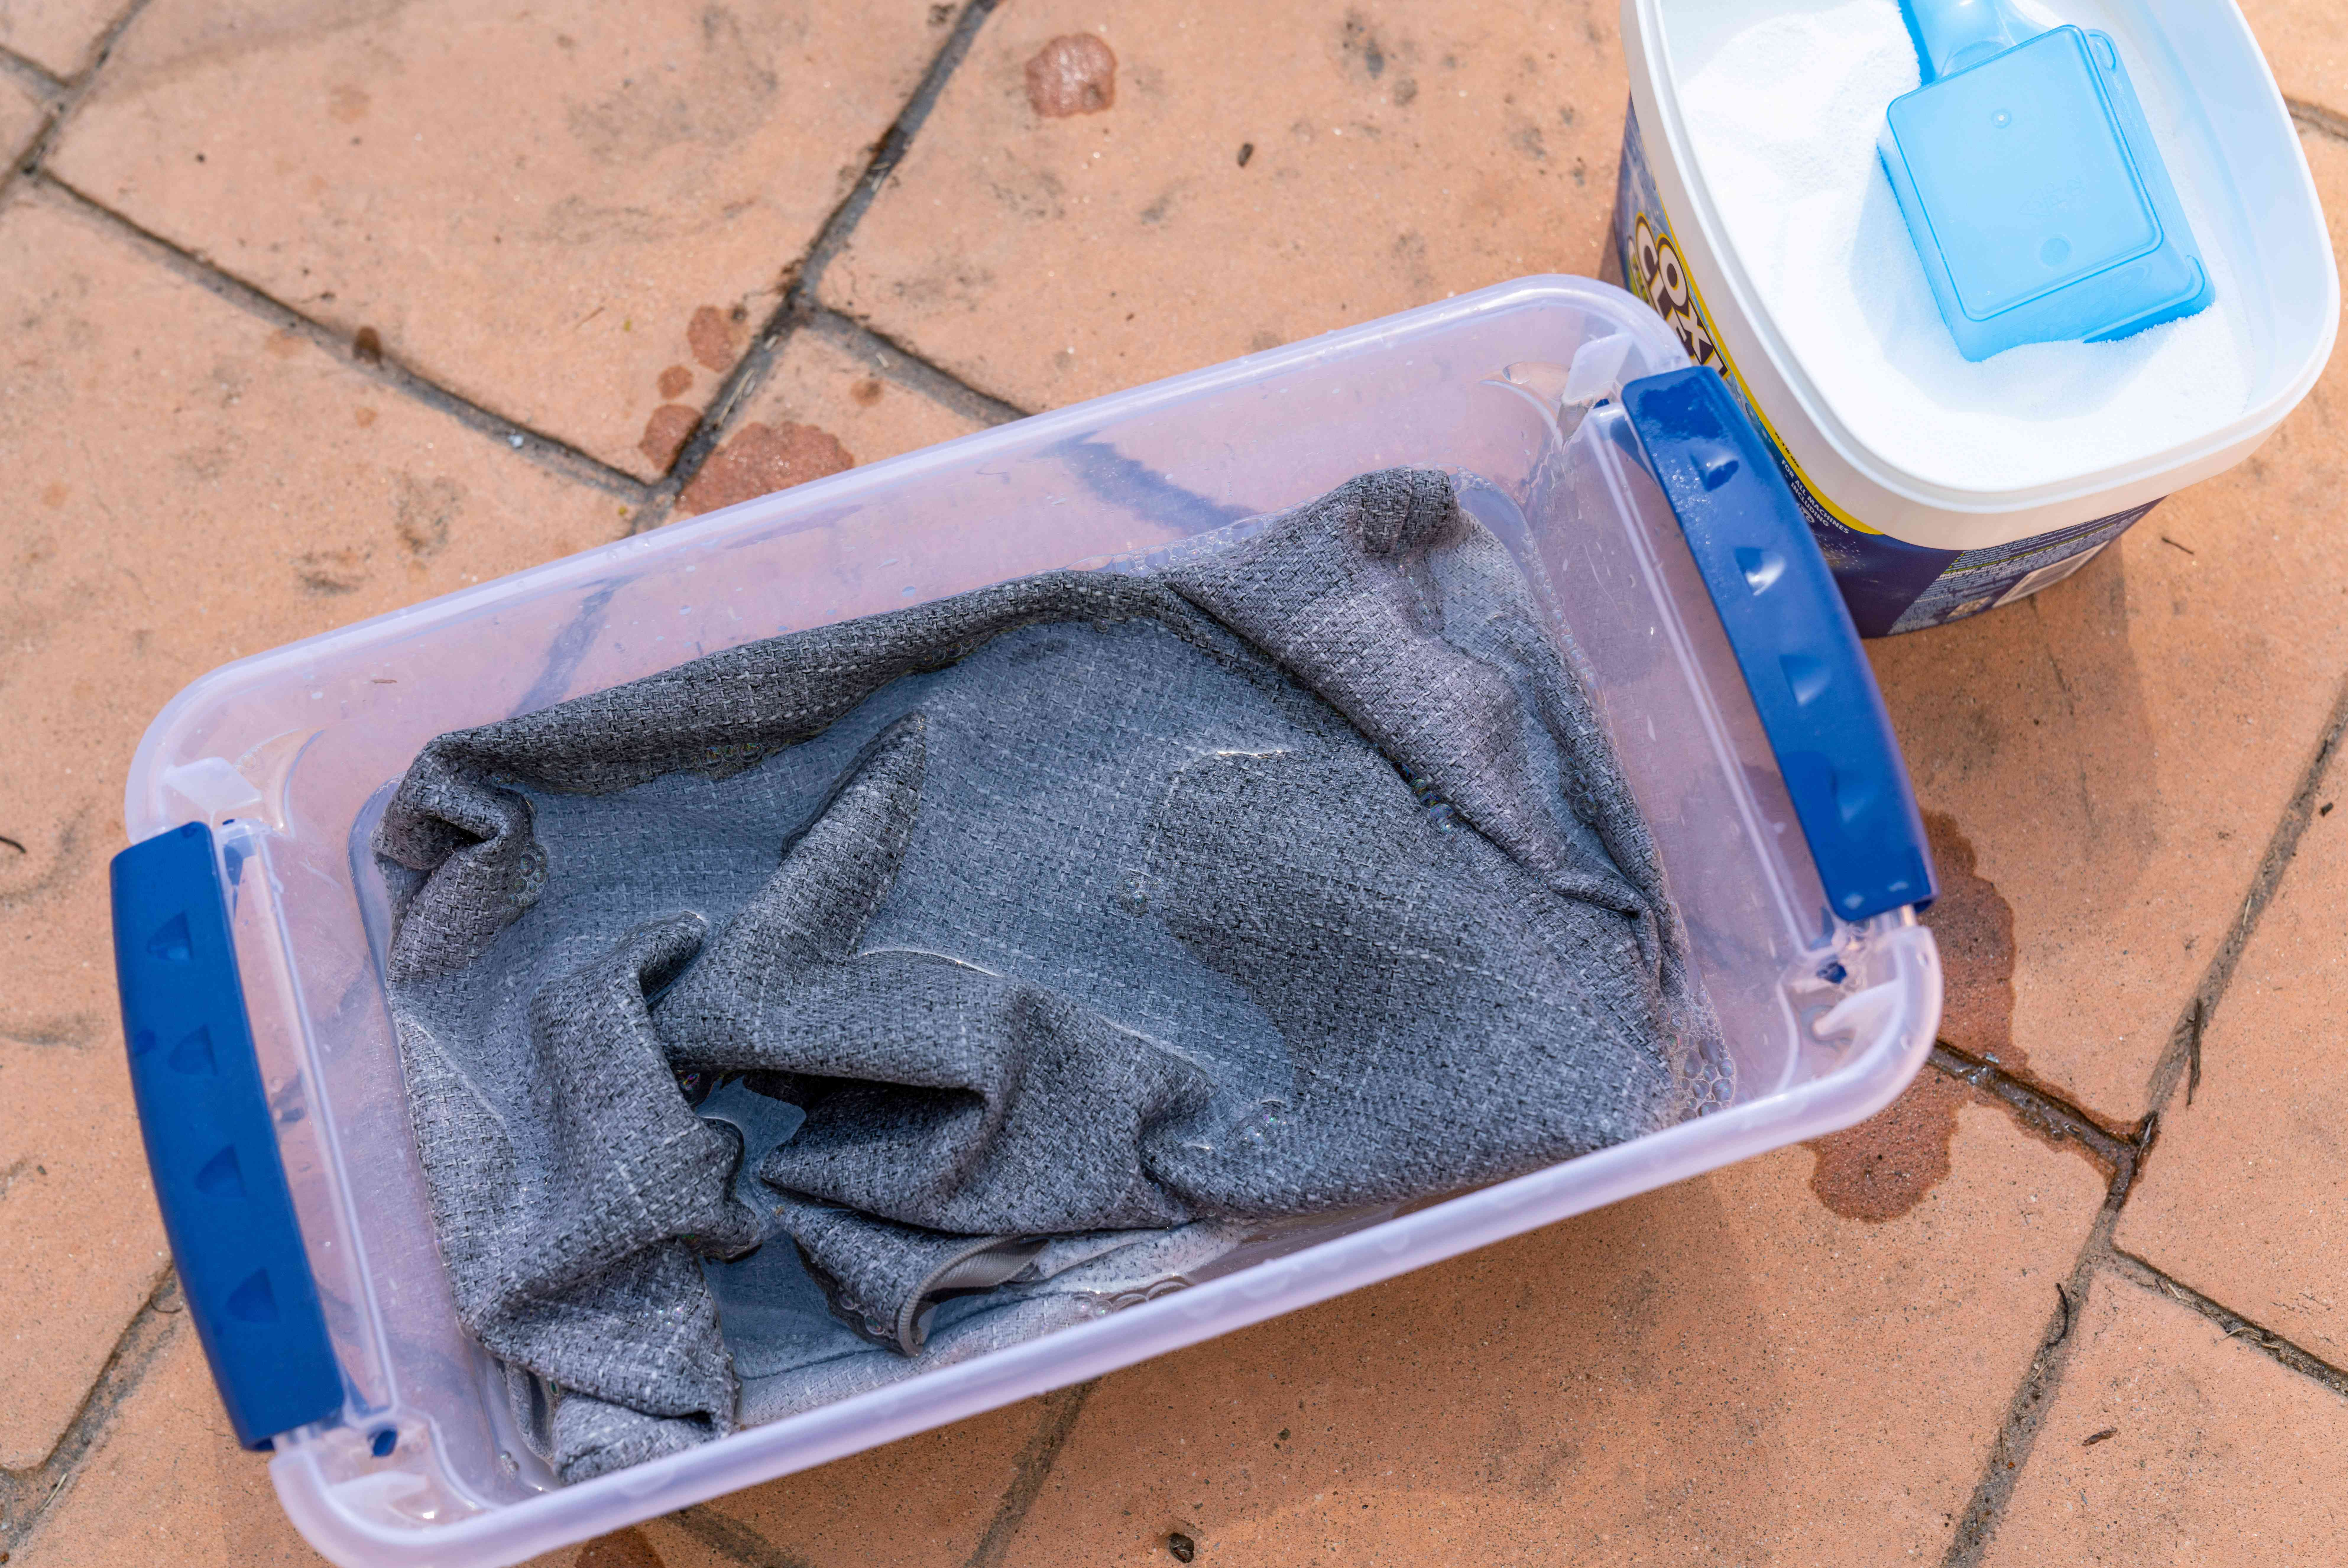 Outdoor furniture fabric soaked in plastic container with hot water and oxygen-based bleach